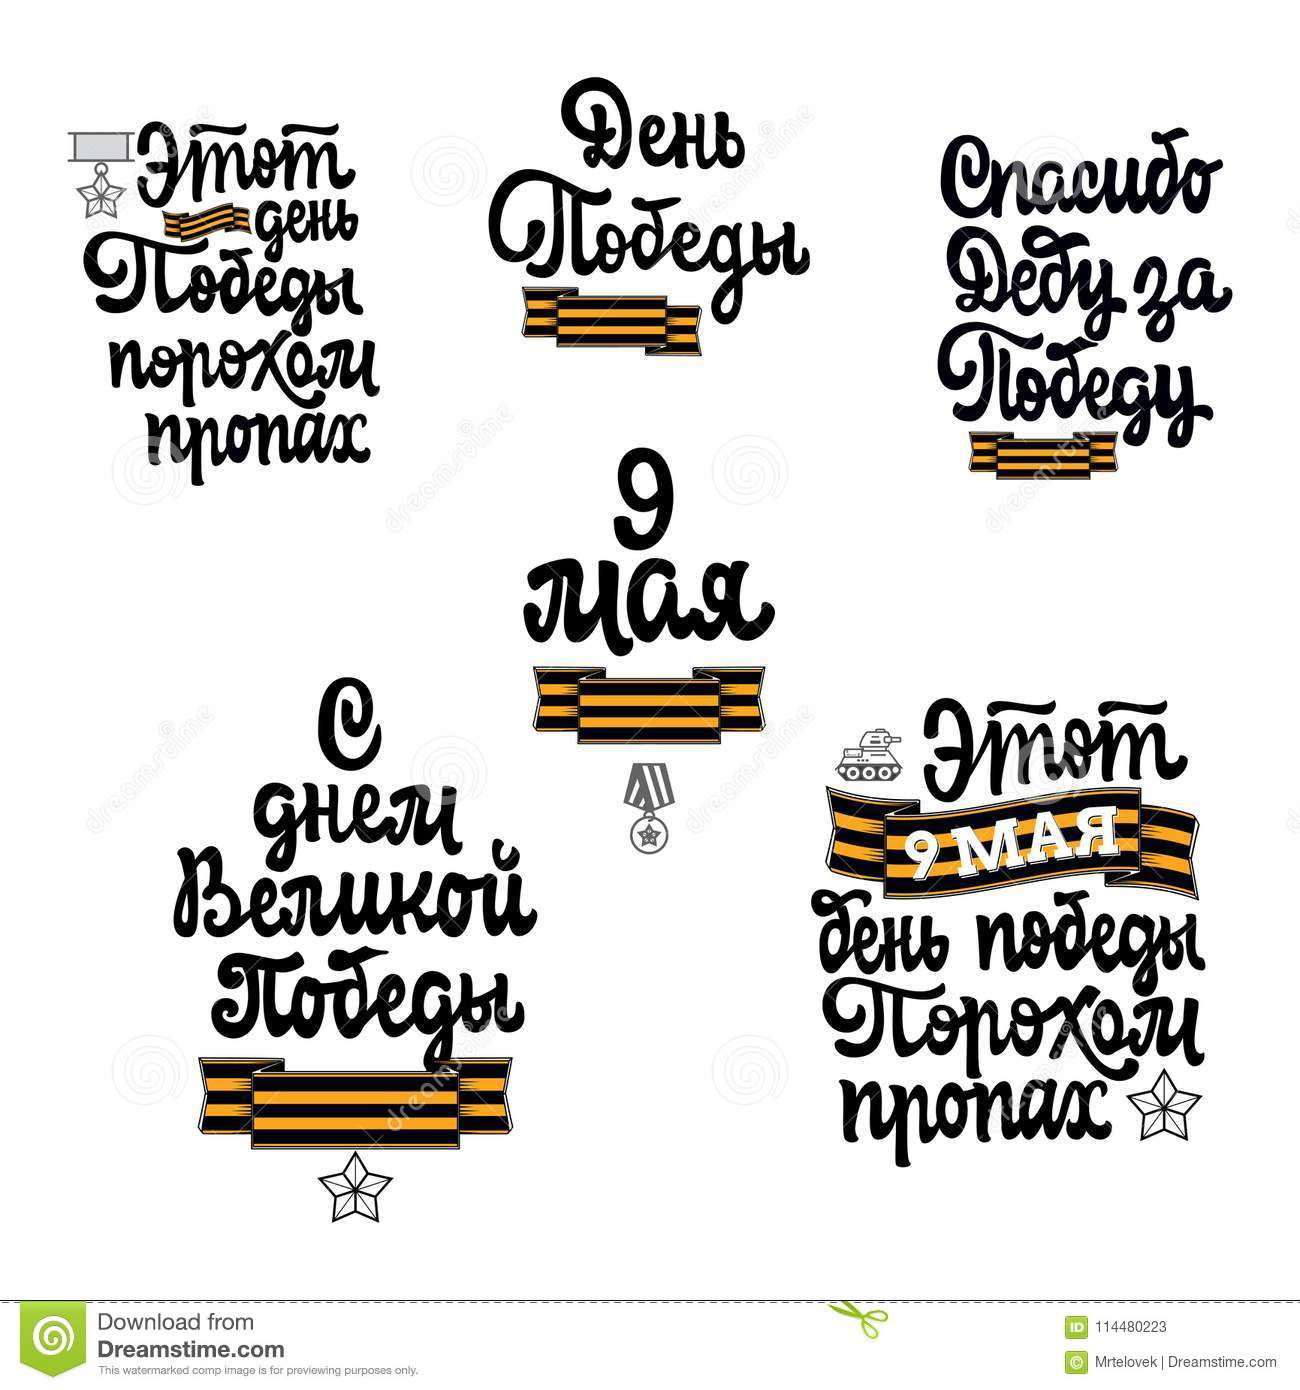 Congratulation May 9 In Russian Phrases On The Day Of The Great